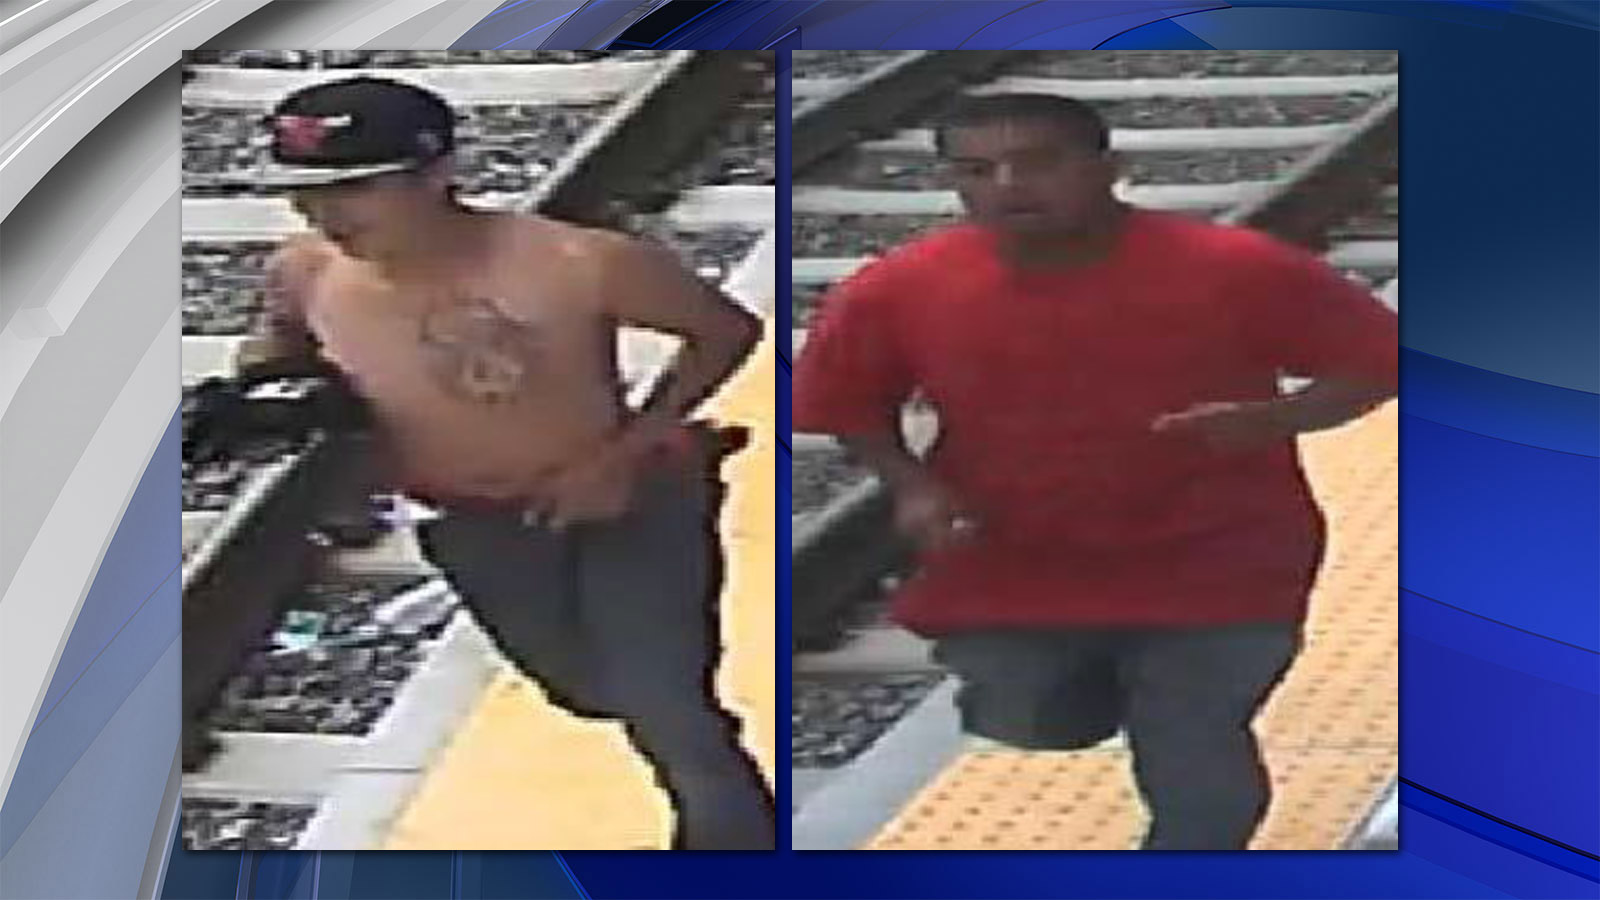 Police in Denver searched for two suspects wanted in a robbery at W. 12th Ave. and N. Knox Court (credit: Denver Police)